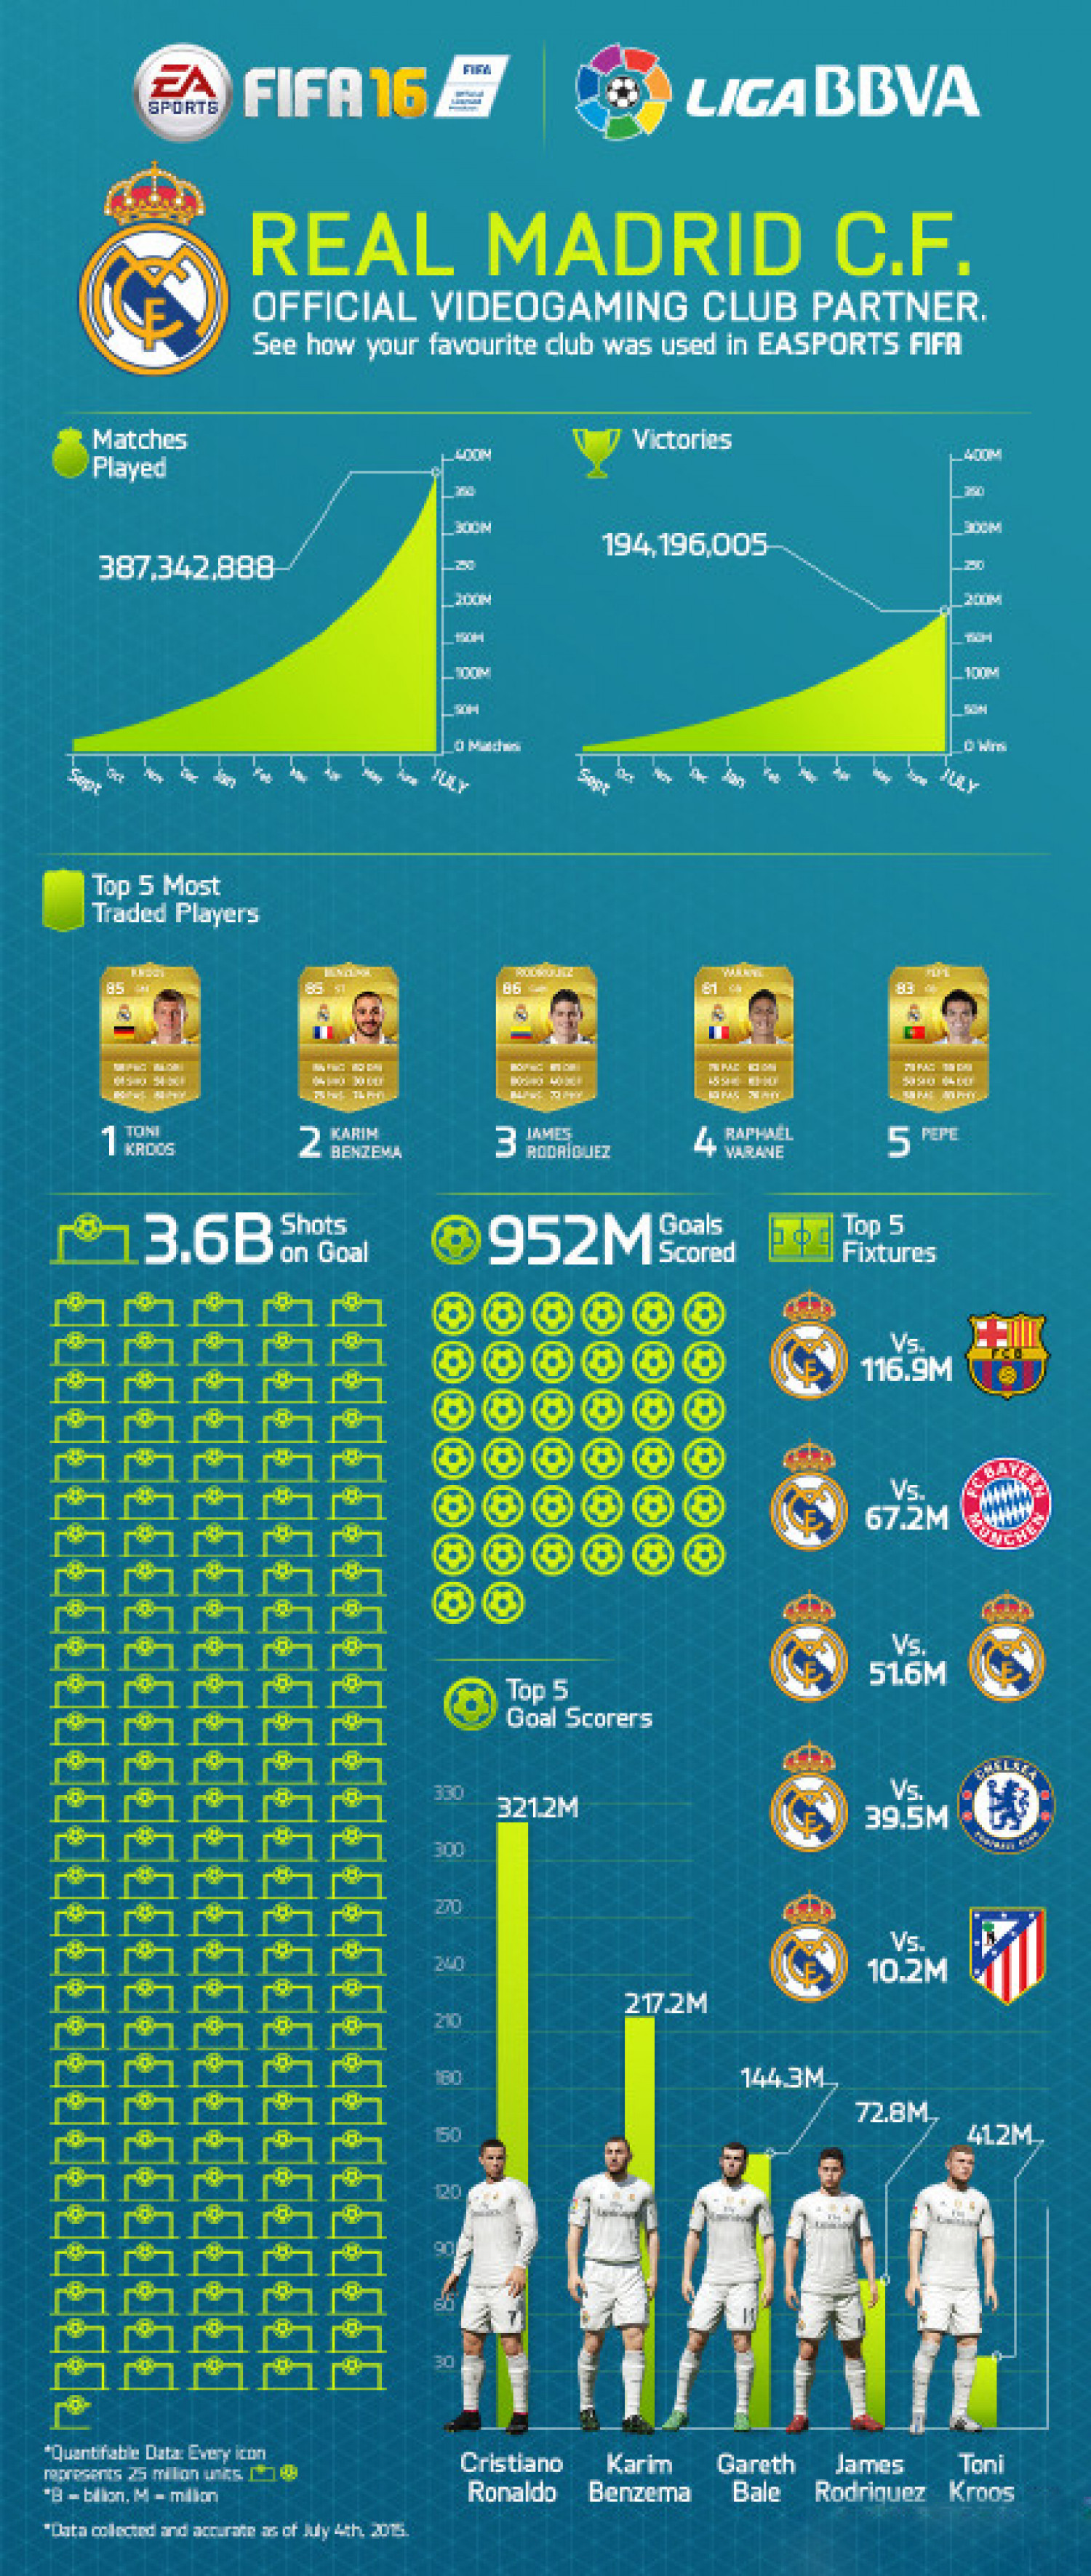 Data about Real Madrid in FIFA after Special Partnership Announced by EA Infographic